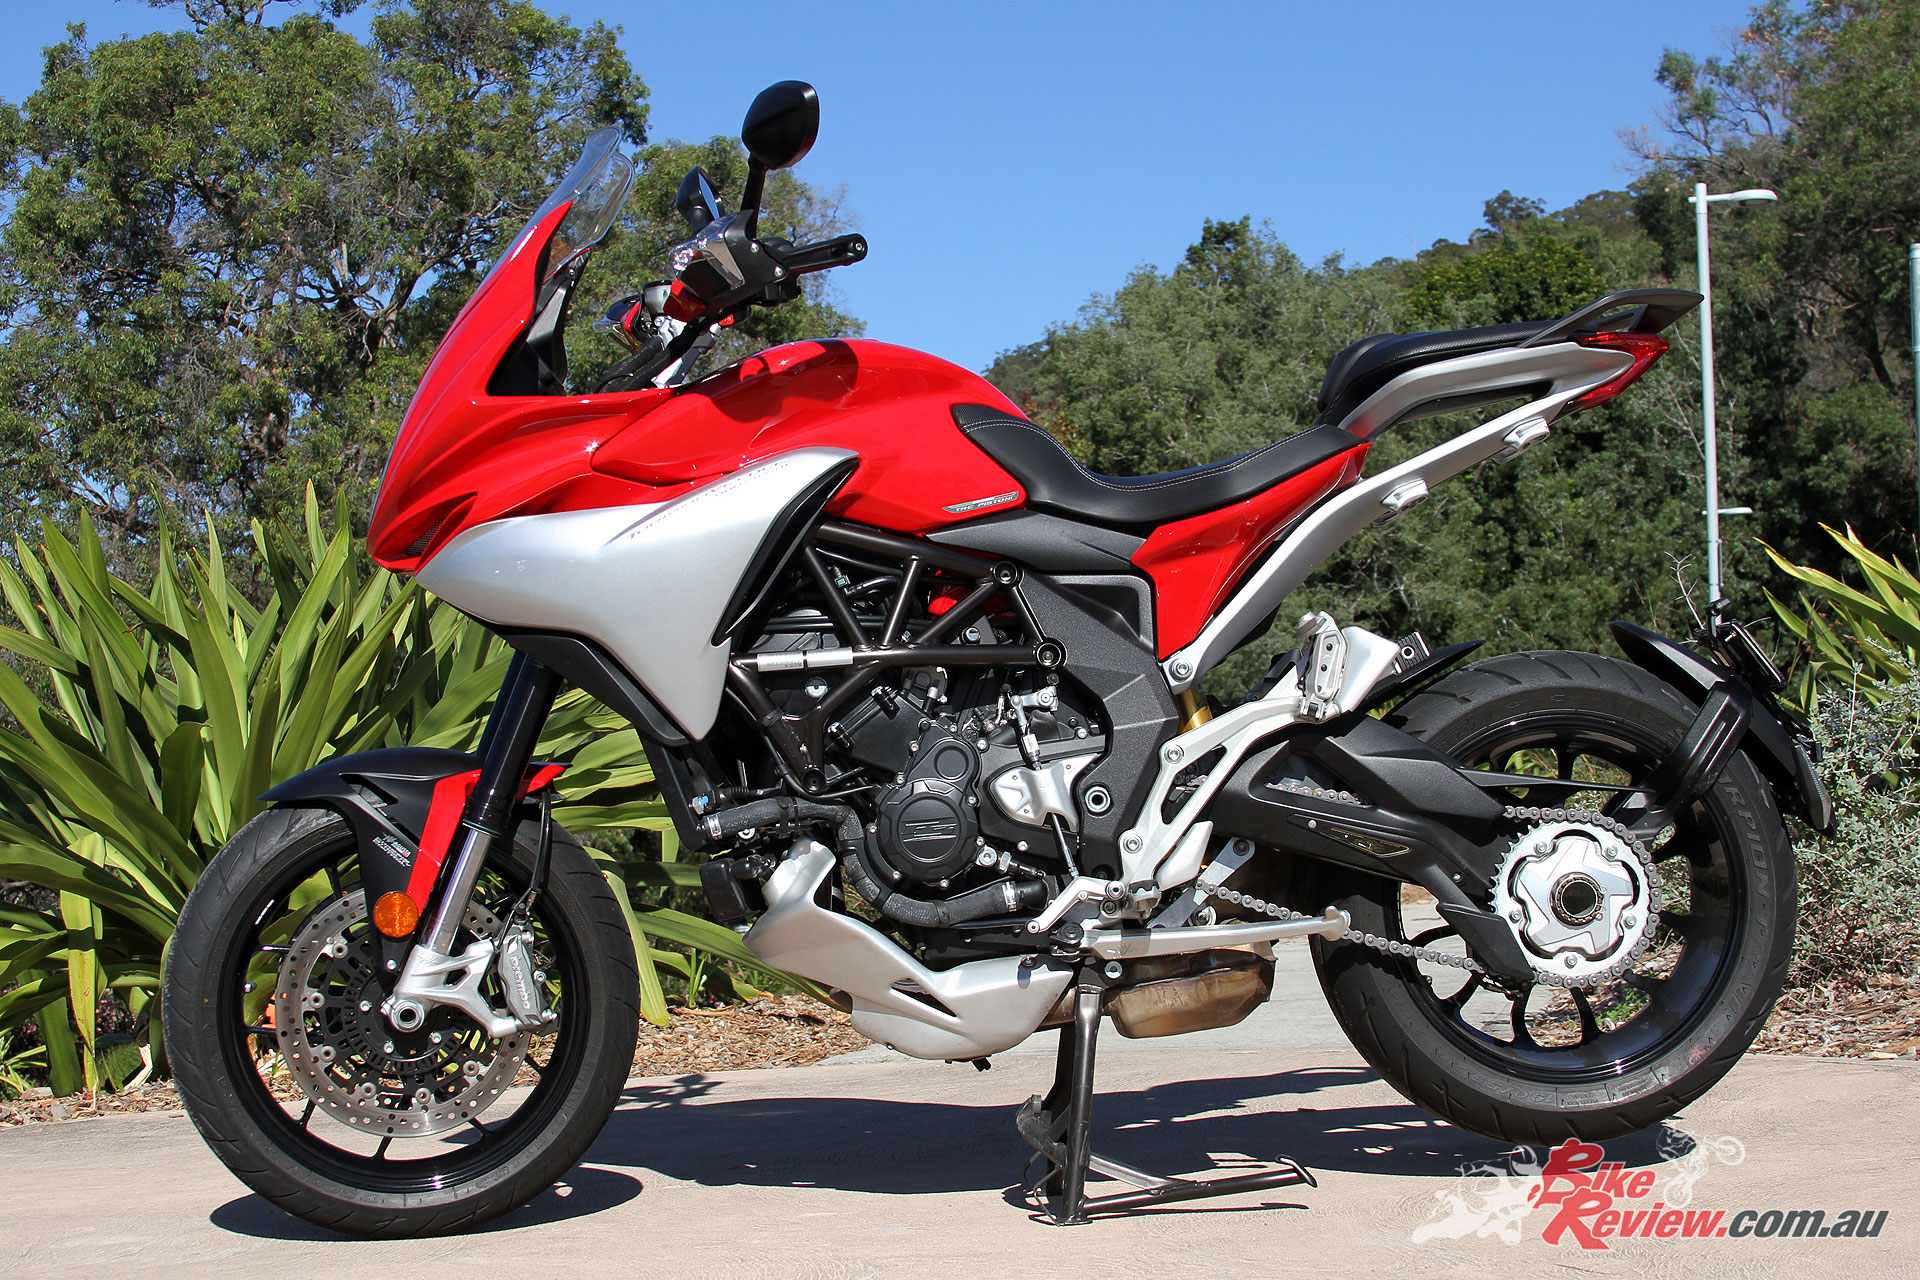 review: 2017 mv agusta turismo veloce lusso - bike review